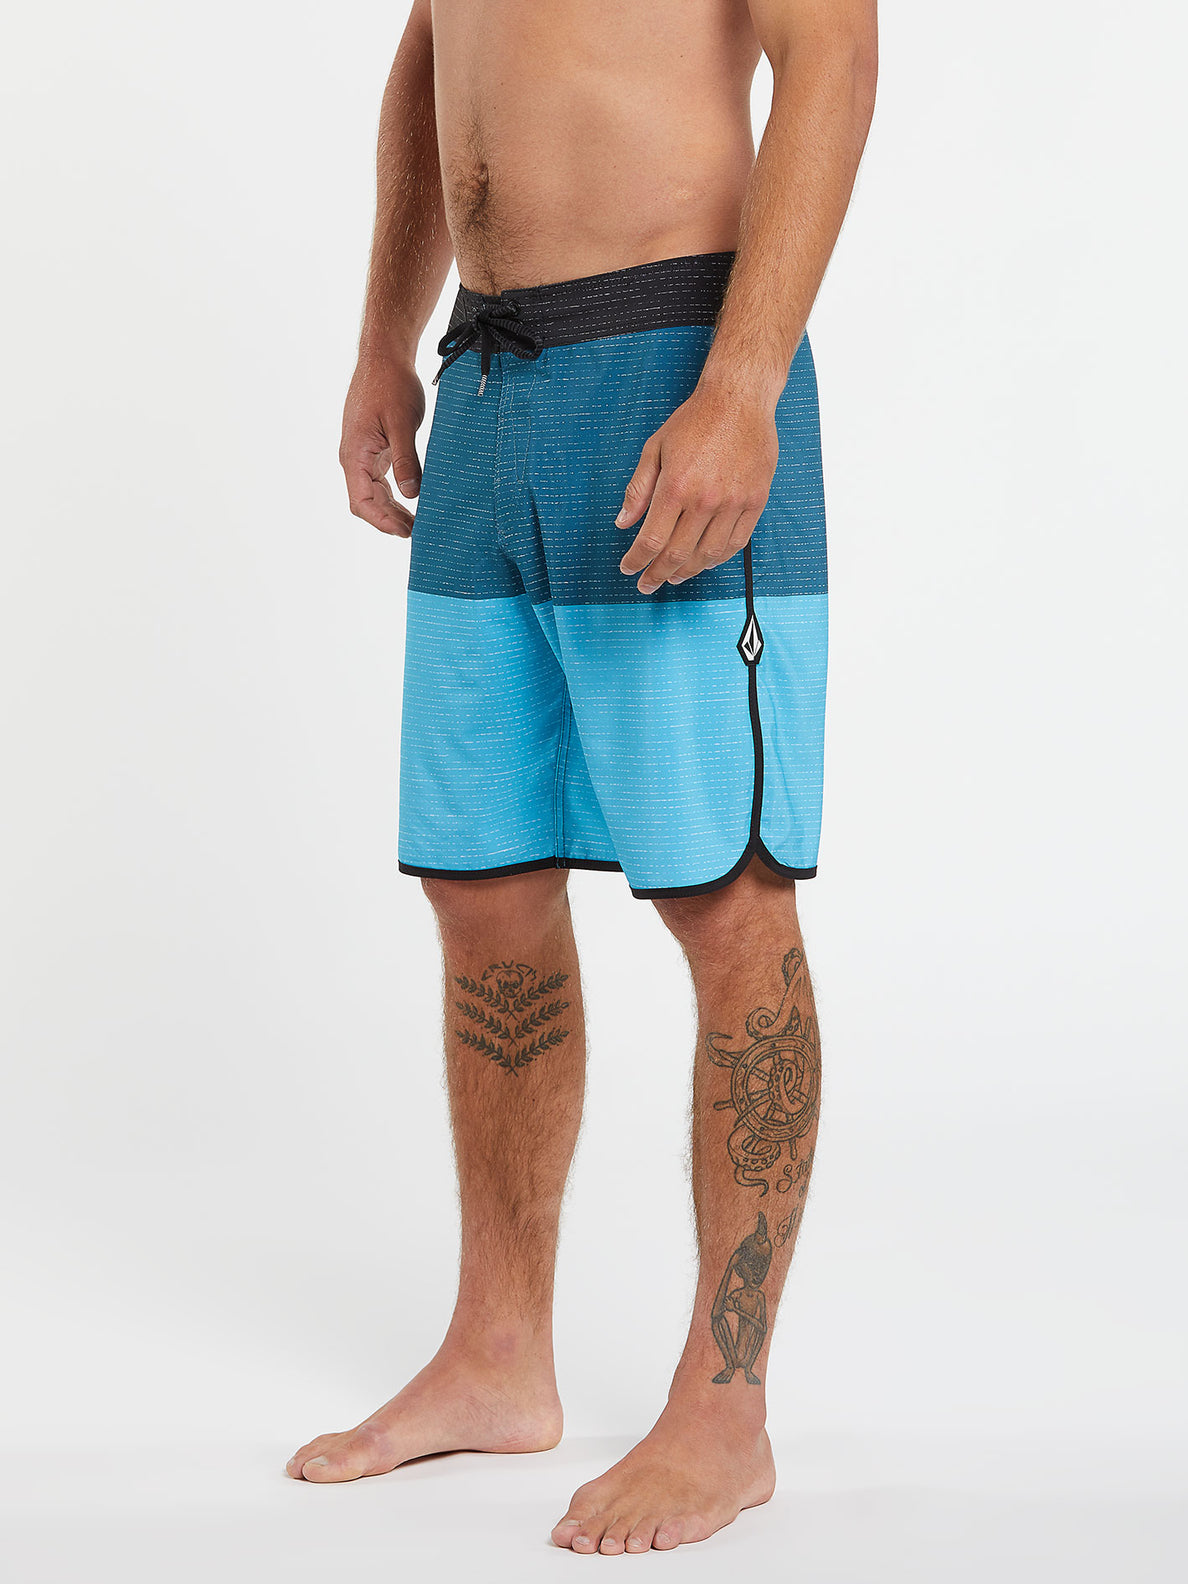 Lido Heather Scallop Mod-Tech Trunks - Rincon Blue (A0822015_RNC) [3]